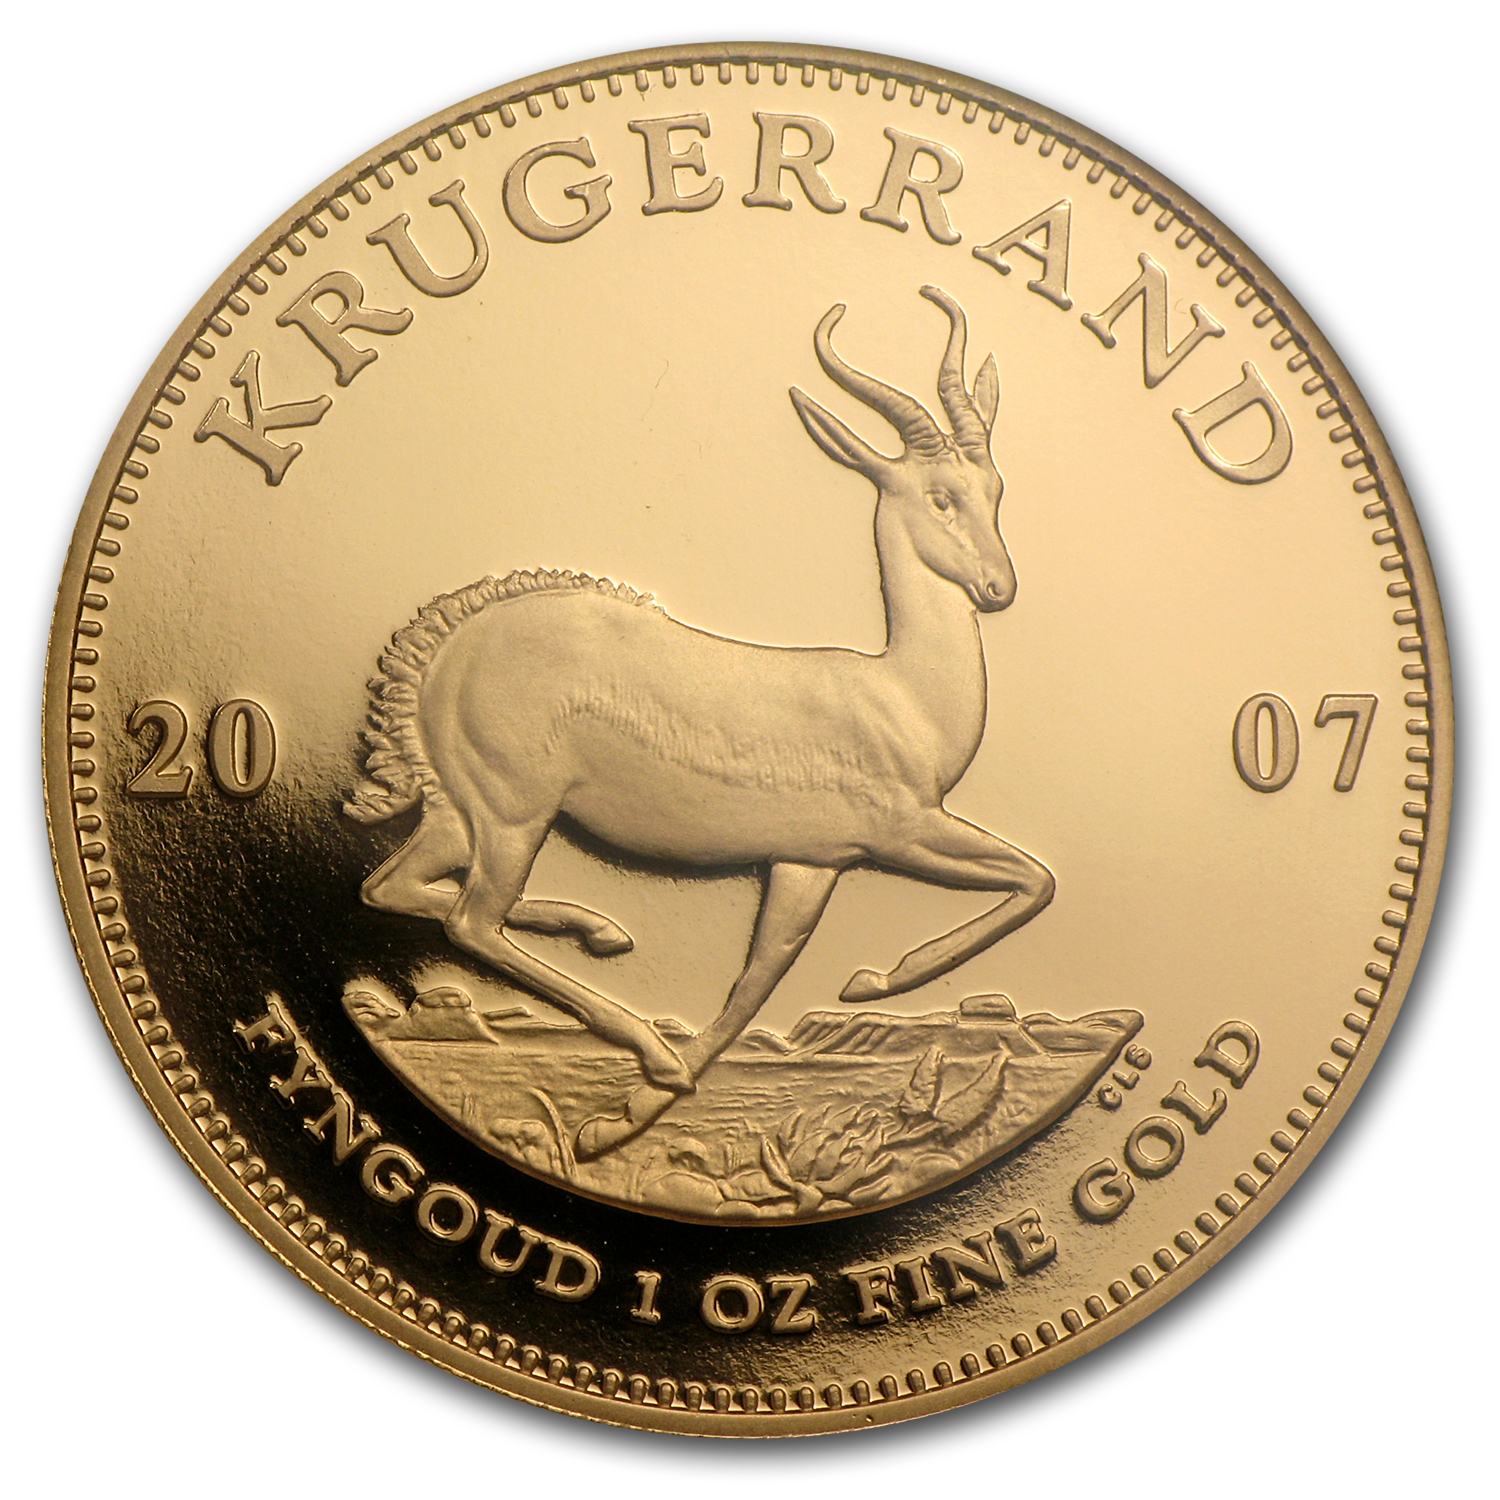 2007 South Africa 1 oz Gold Krugerrand PF-69 NGC